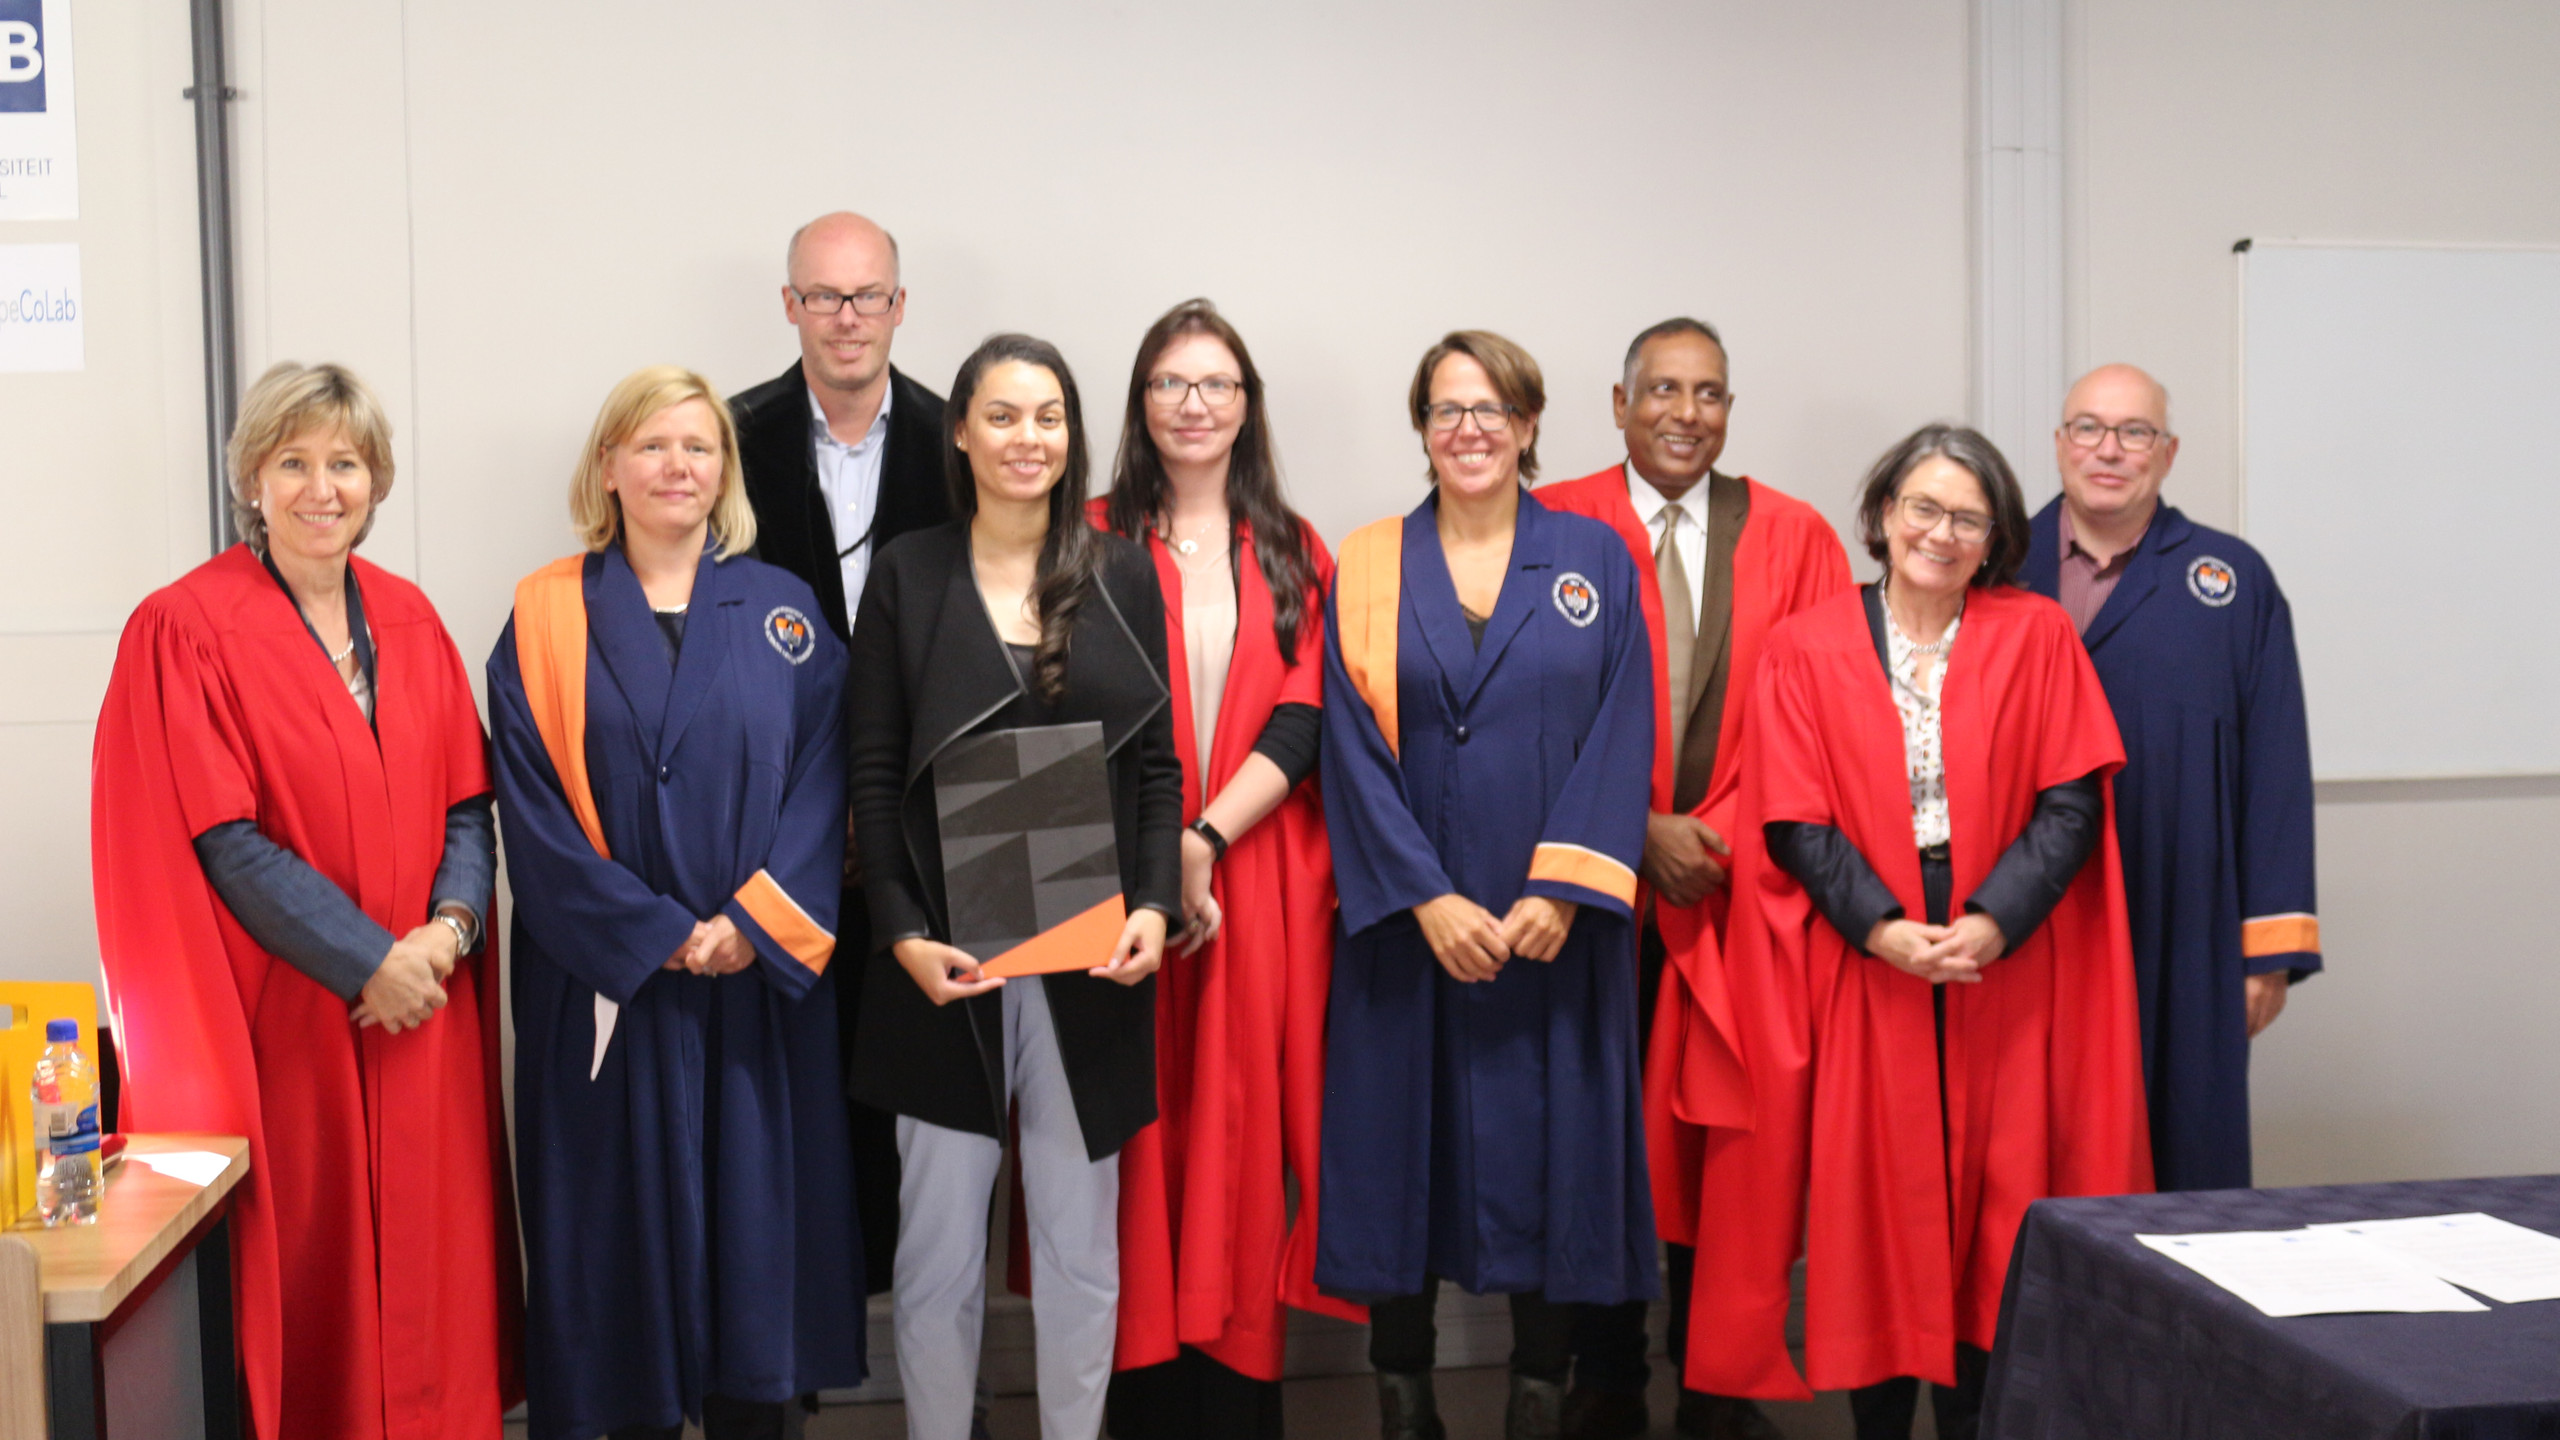 Phd Jury of Dr Carlynn Pokpas